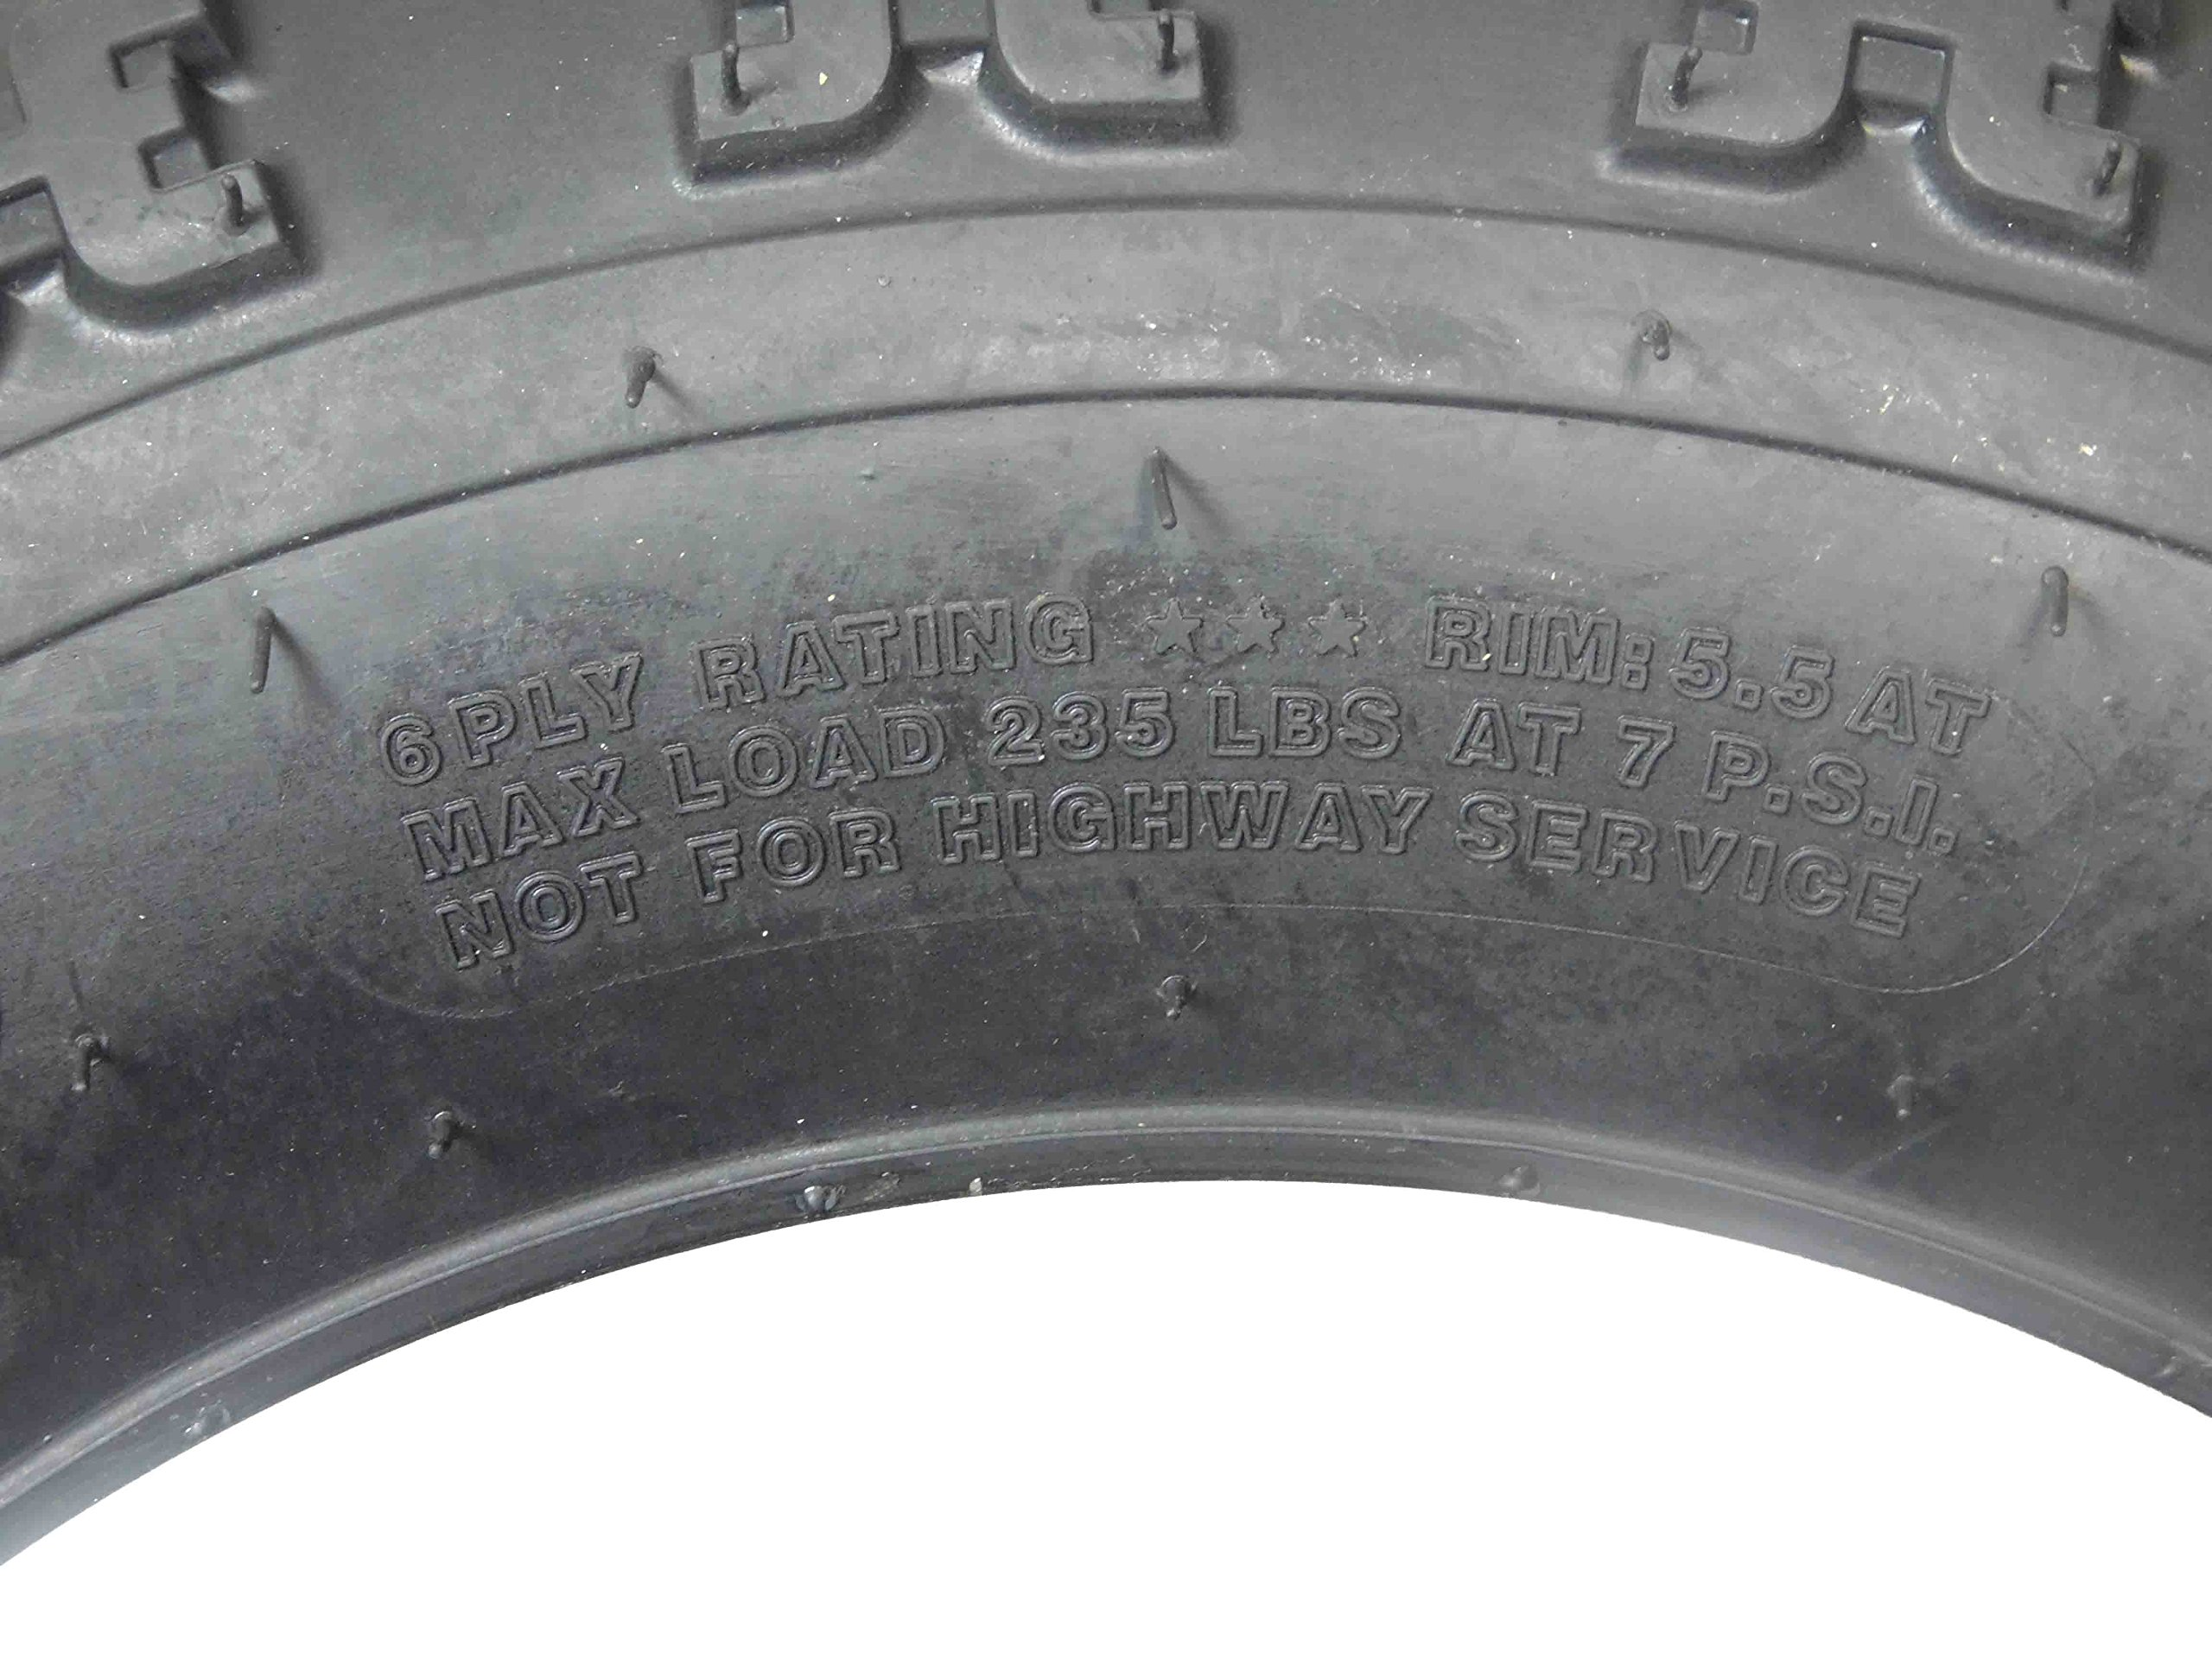 New MASSFX ATV Sport Quad Tires 21X7-10 20X10-9 6 Ply Dual Compound Front Rear For Yamaha Raptor Banshee Honda 400ex 450r 660 700 400 450 350 250 (Four Pack two Front 21x7-10 and Two Rear20x10-9 6) by MassFx (Image #4)